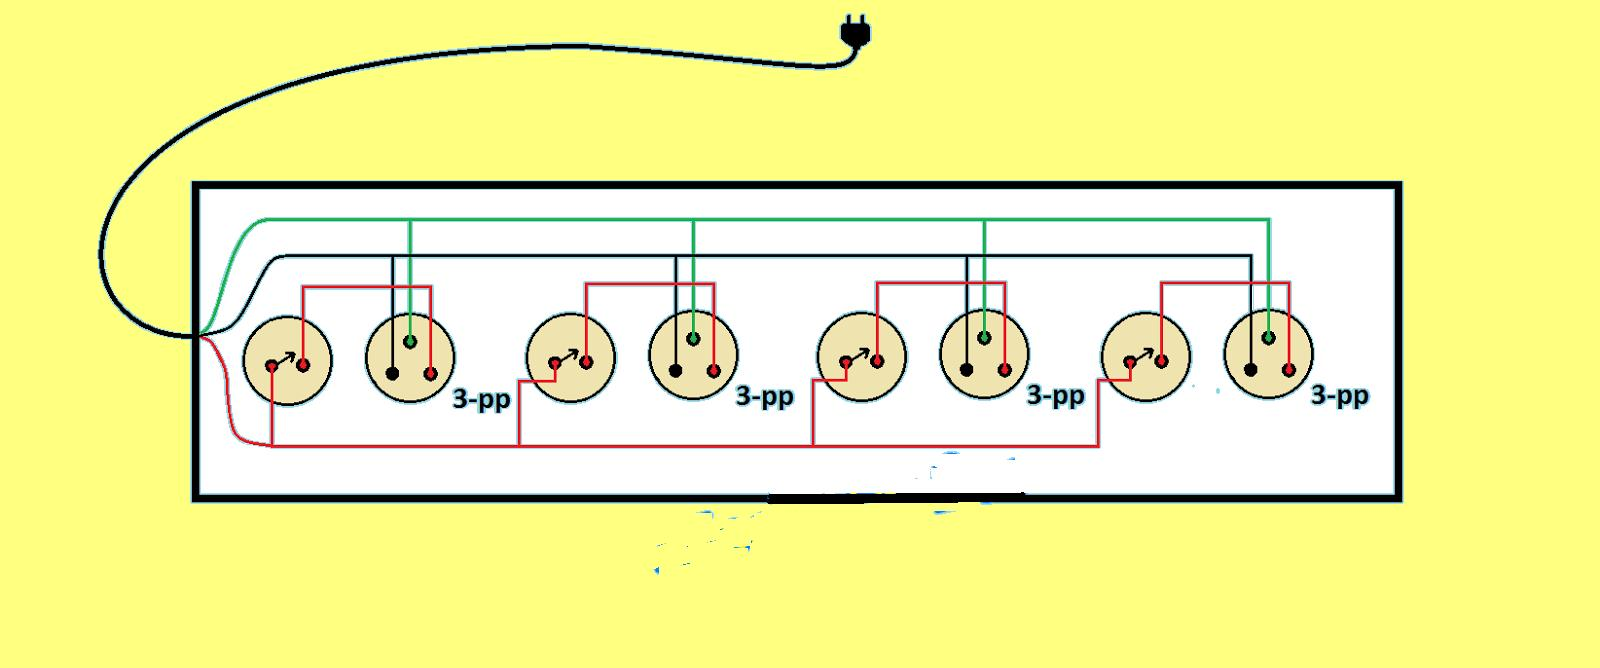 91 91 jpg extension board wiring diagram at edmiracle.co